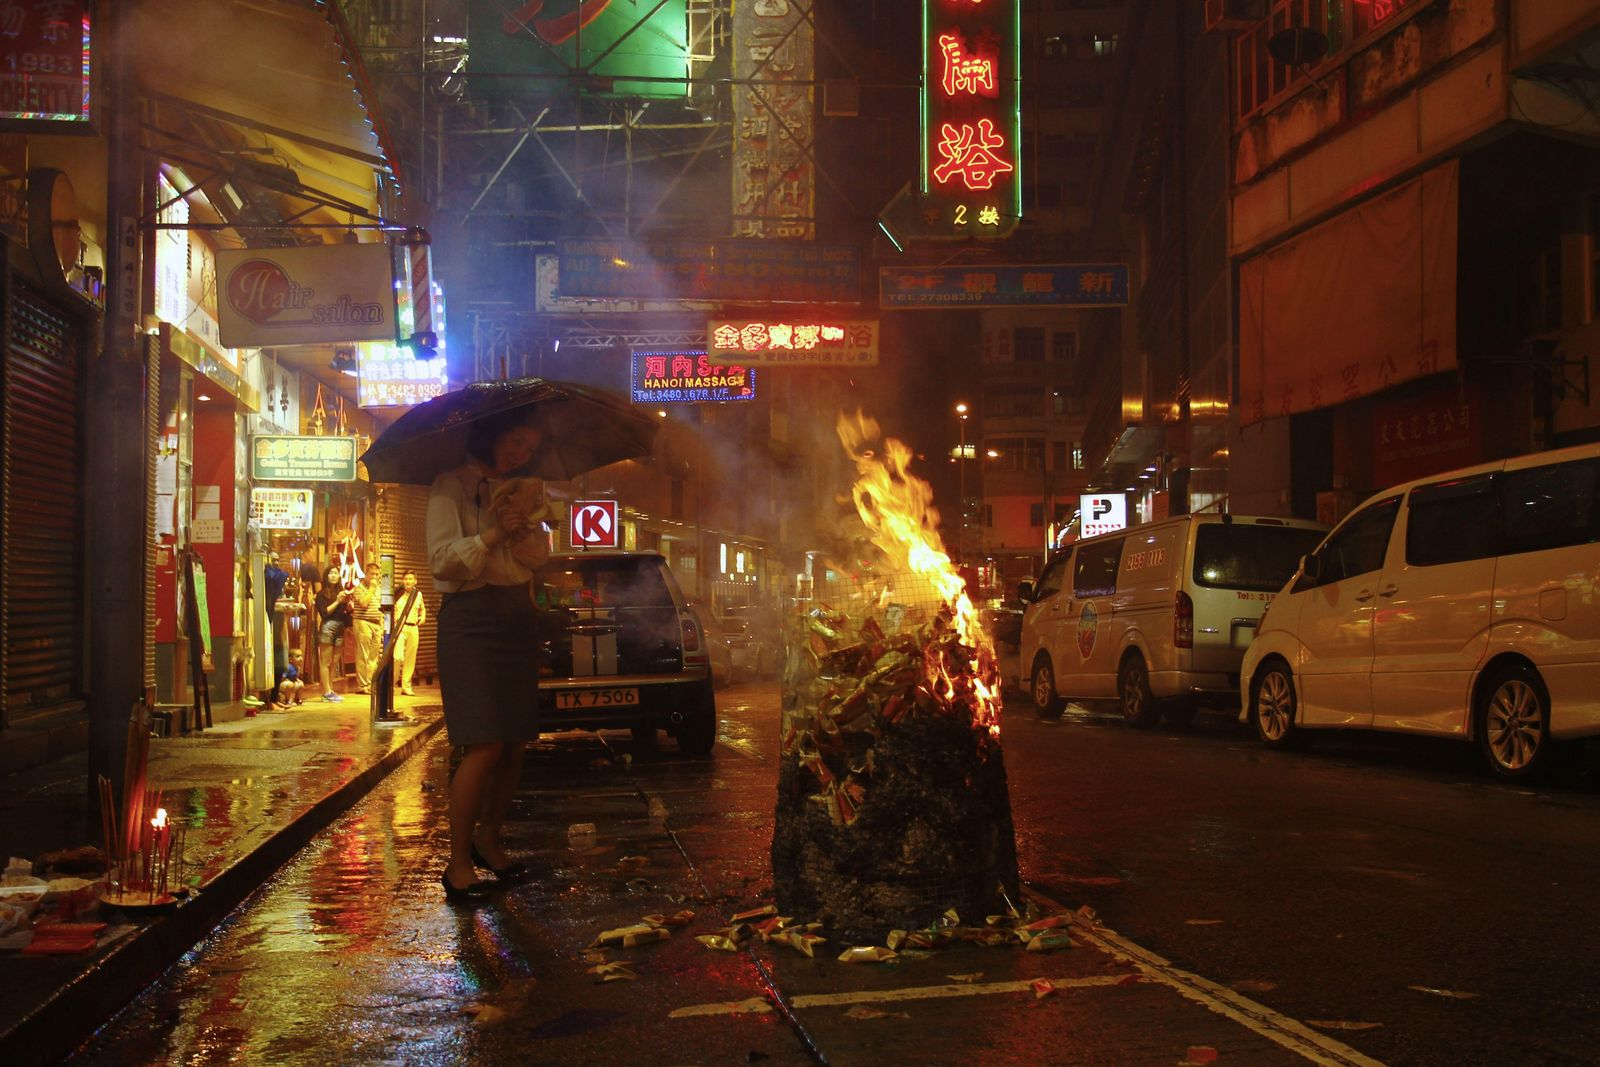 In Hong Kong, paper offerings – including 'hell money' are burned in special receptacles to pacify ...